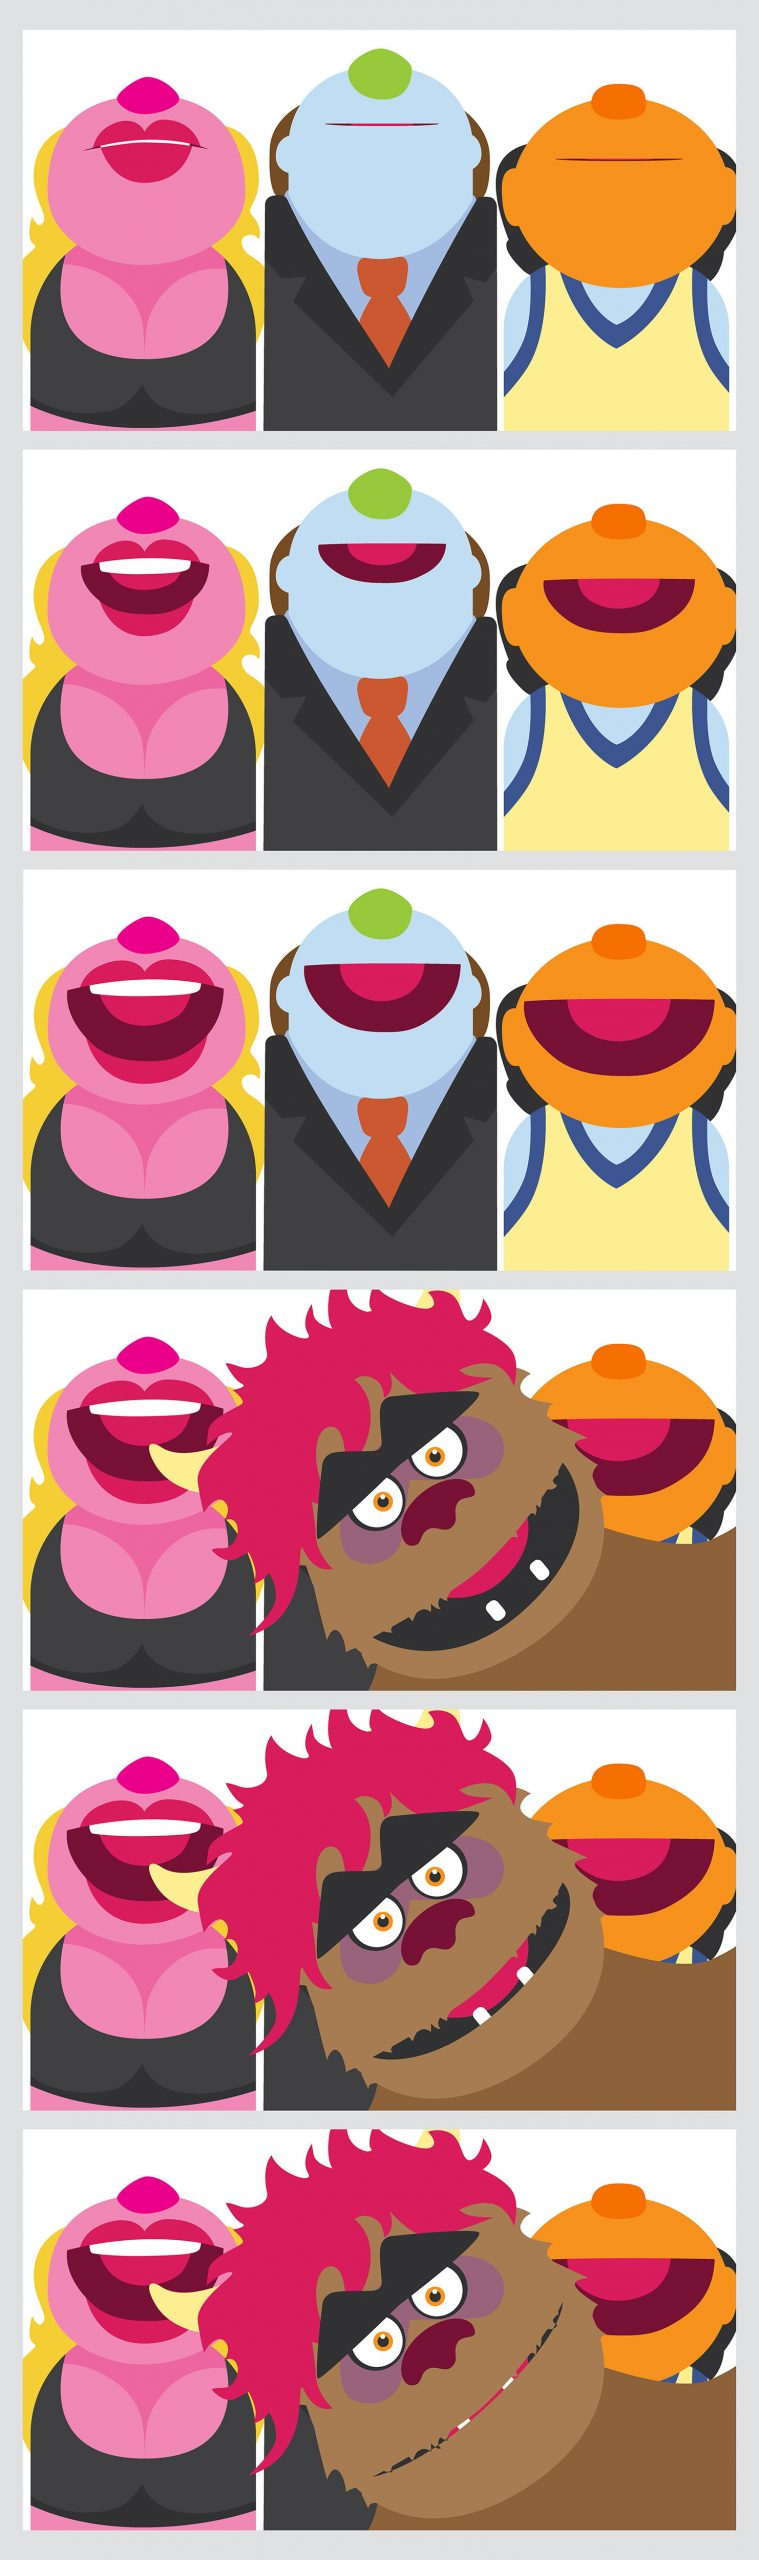 Three muppet-like puppets are shown in six separate illustrations, standing side-by-side with their mouths slowly opening as the images progress towards the bottom of the set. In the last three frames, a fuzzy, pink-haired puppet pops in from the side of the frame.